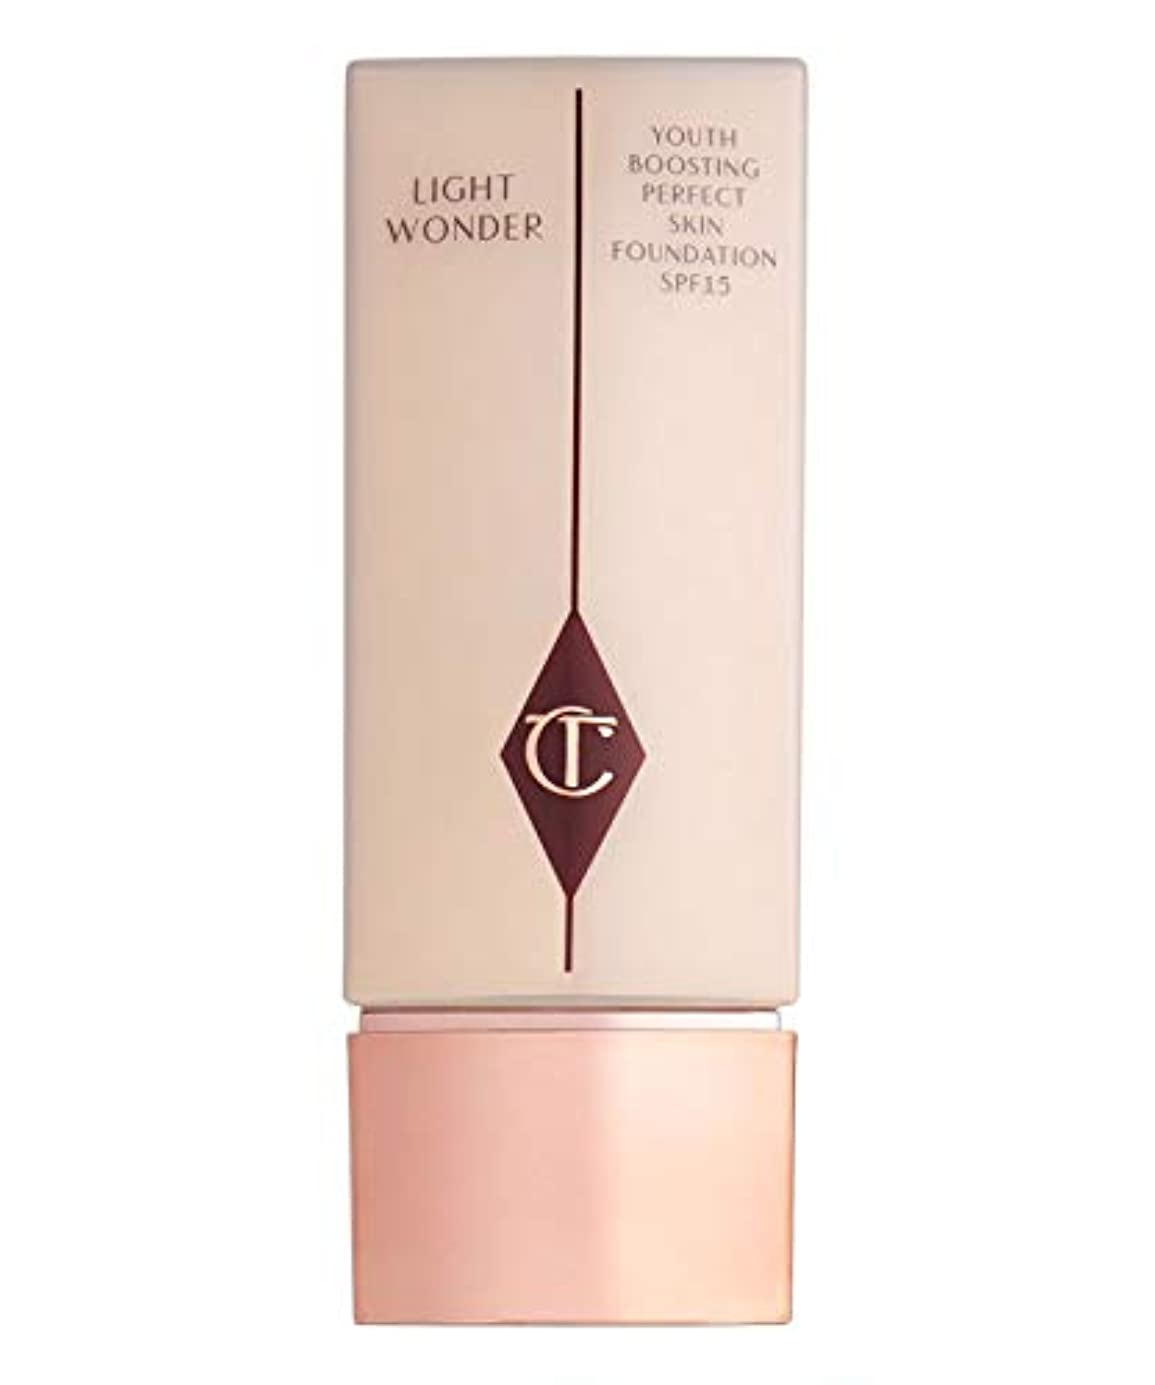 タイトル歩行者かわいらしいCHARLOTTE TILBURY Light Wonder foundation SPF 15 , Fair 01 by CHARLOTTE TILBURY